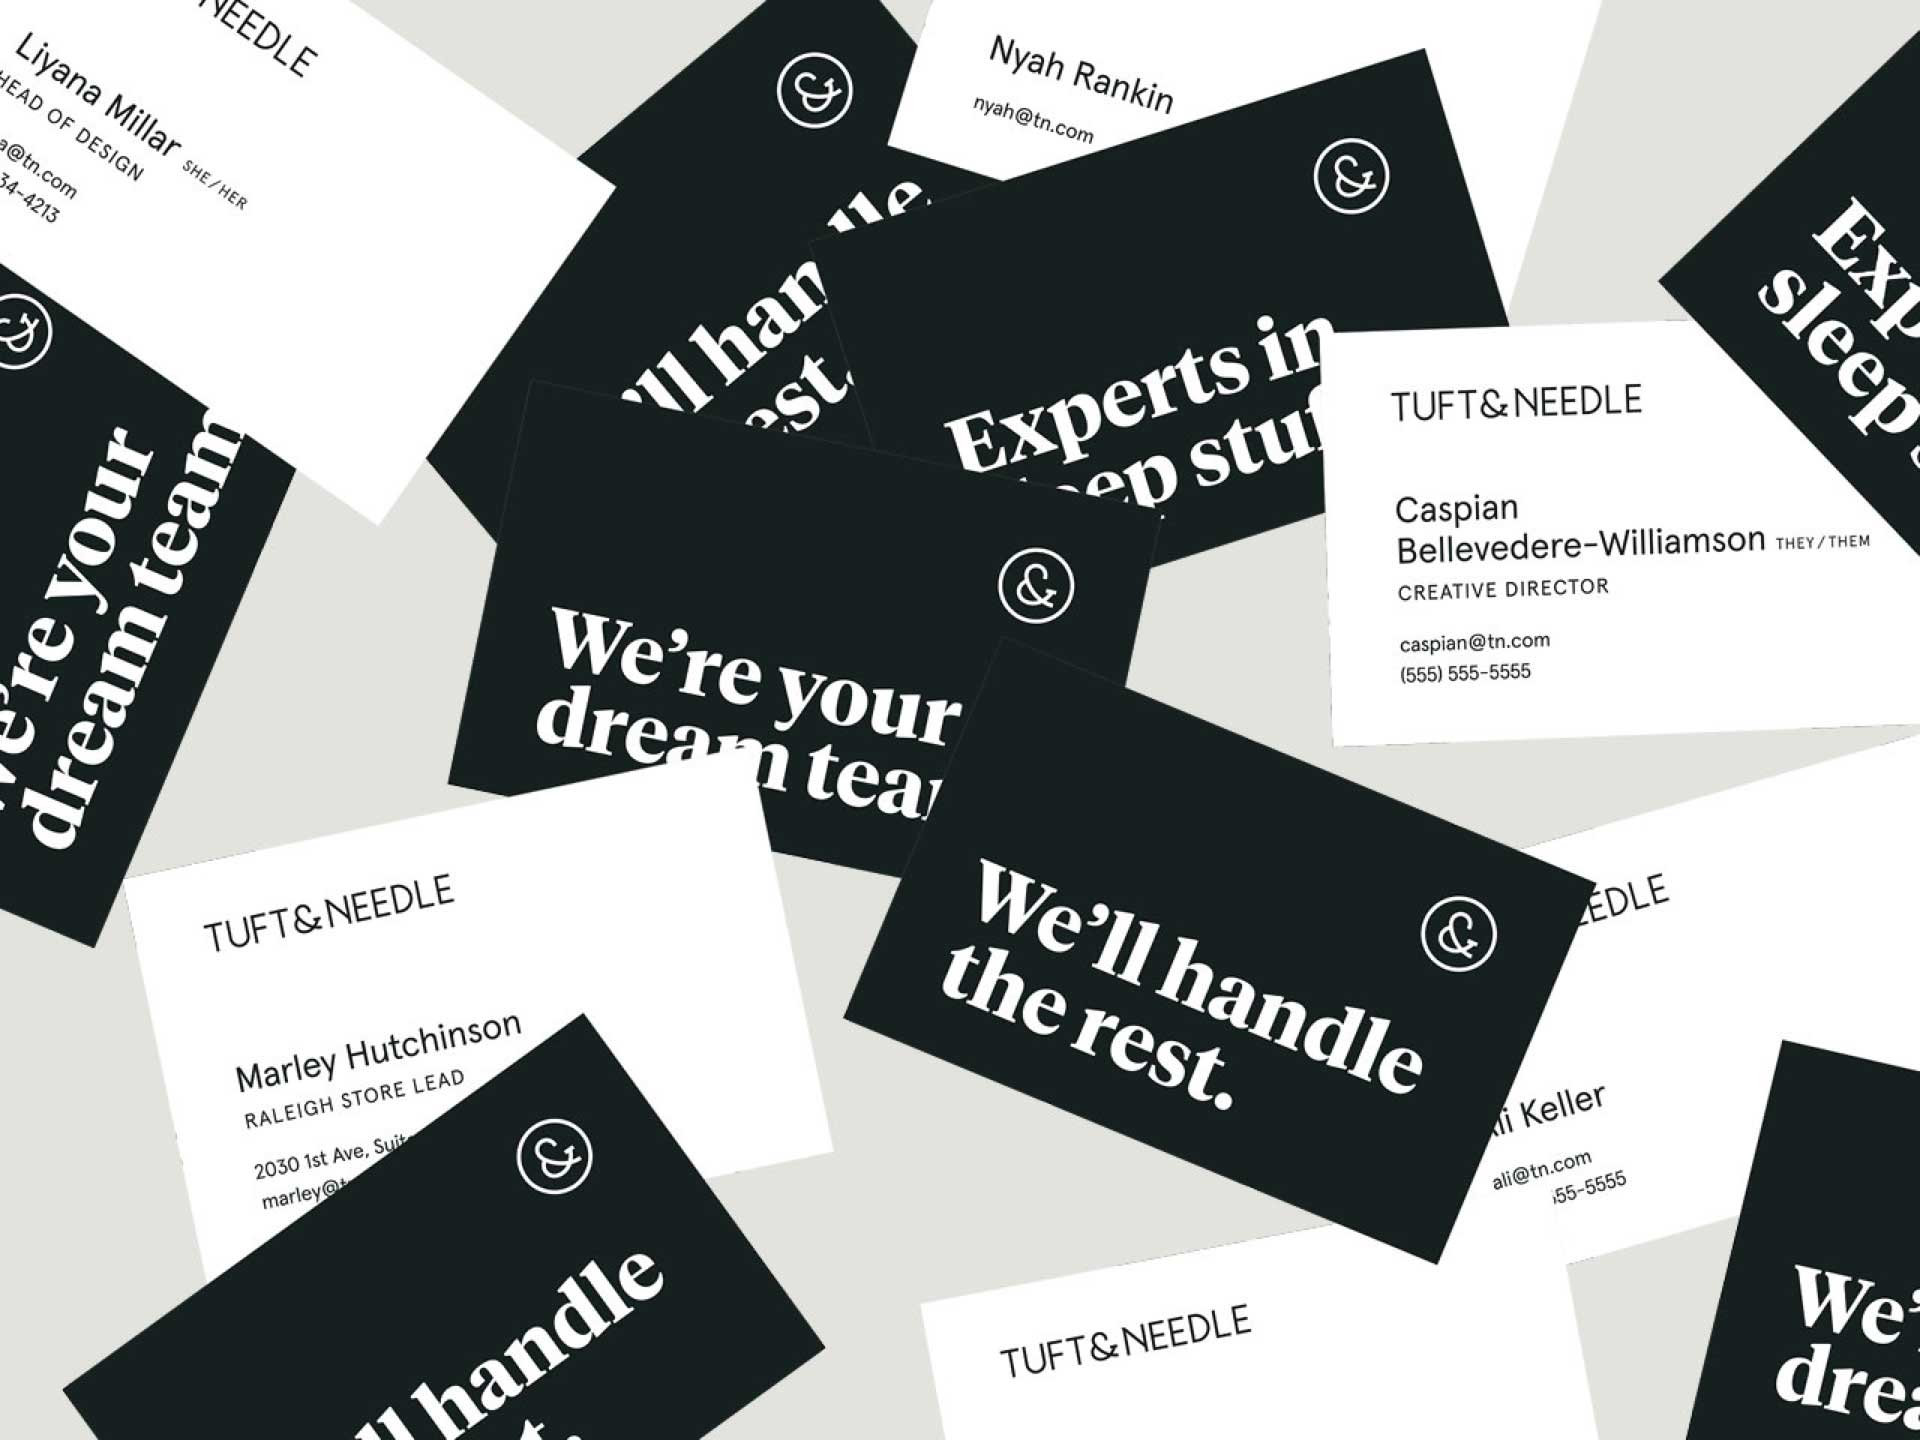 "Scattered business cards. Some of the cards show a dark gray side with one of three types of greetings that read ""We're your dream team,"" ""We'll handle the rest,"" and ""Experts in sleep stuff."" The others show a side that is white and has a simple typographic layout with the Tuft & Needle logo and different amounts of information on each card."